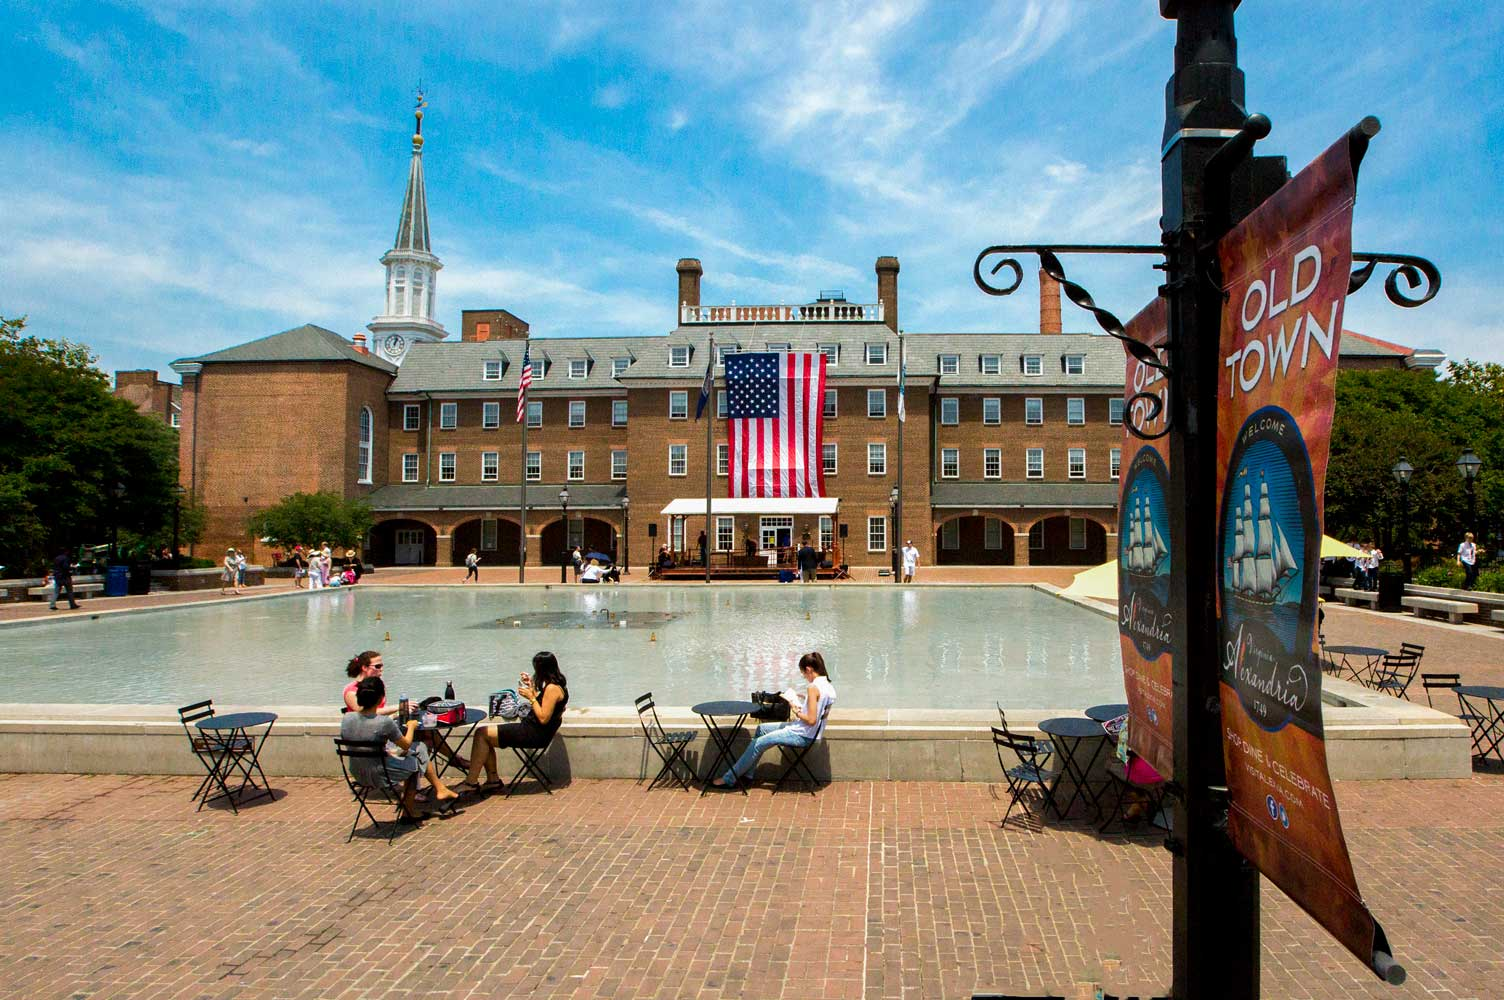 Old Town Alexandria is 15 minutes from Woodmont Park Apartments in Alexandria, VA